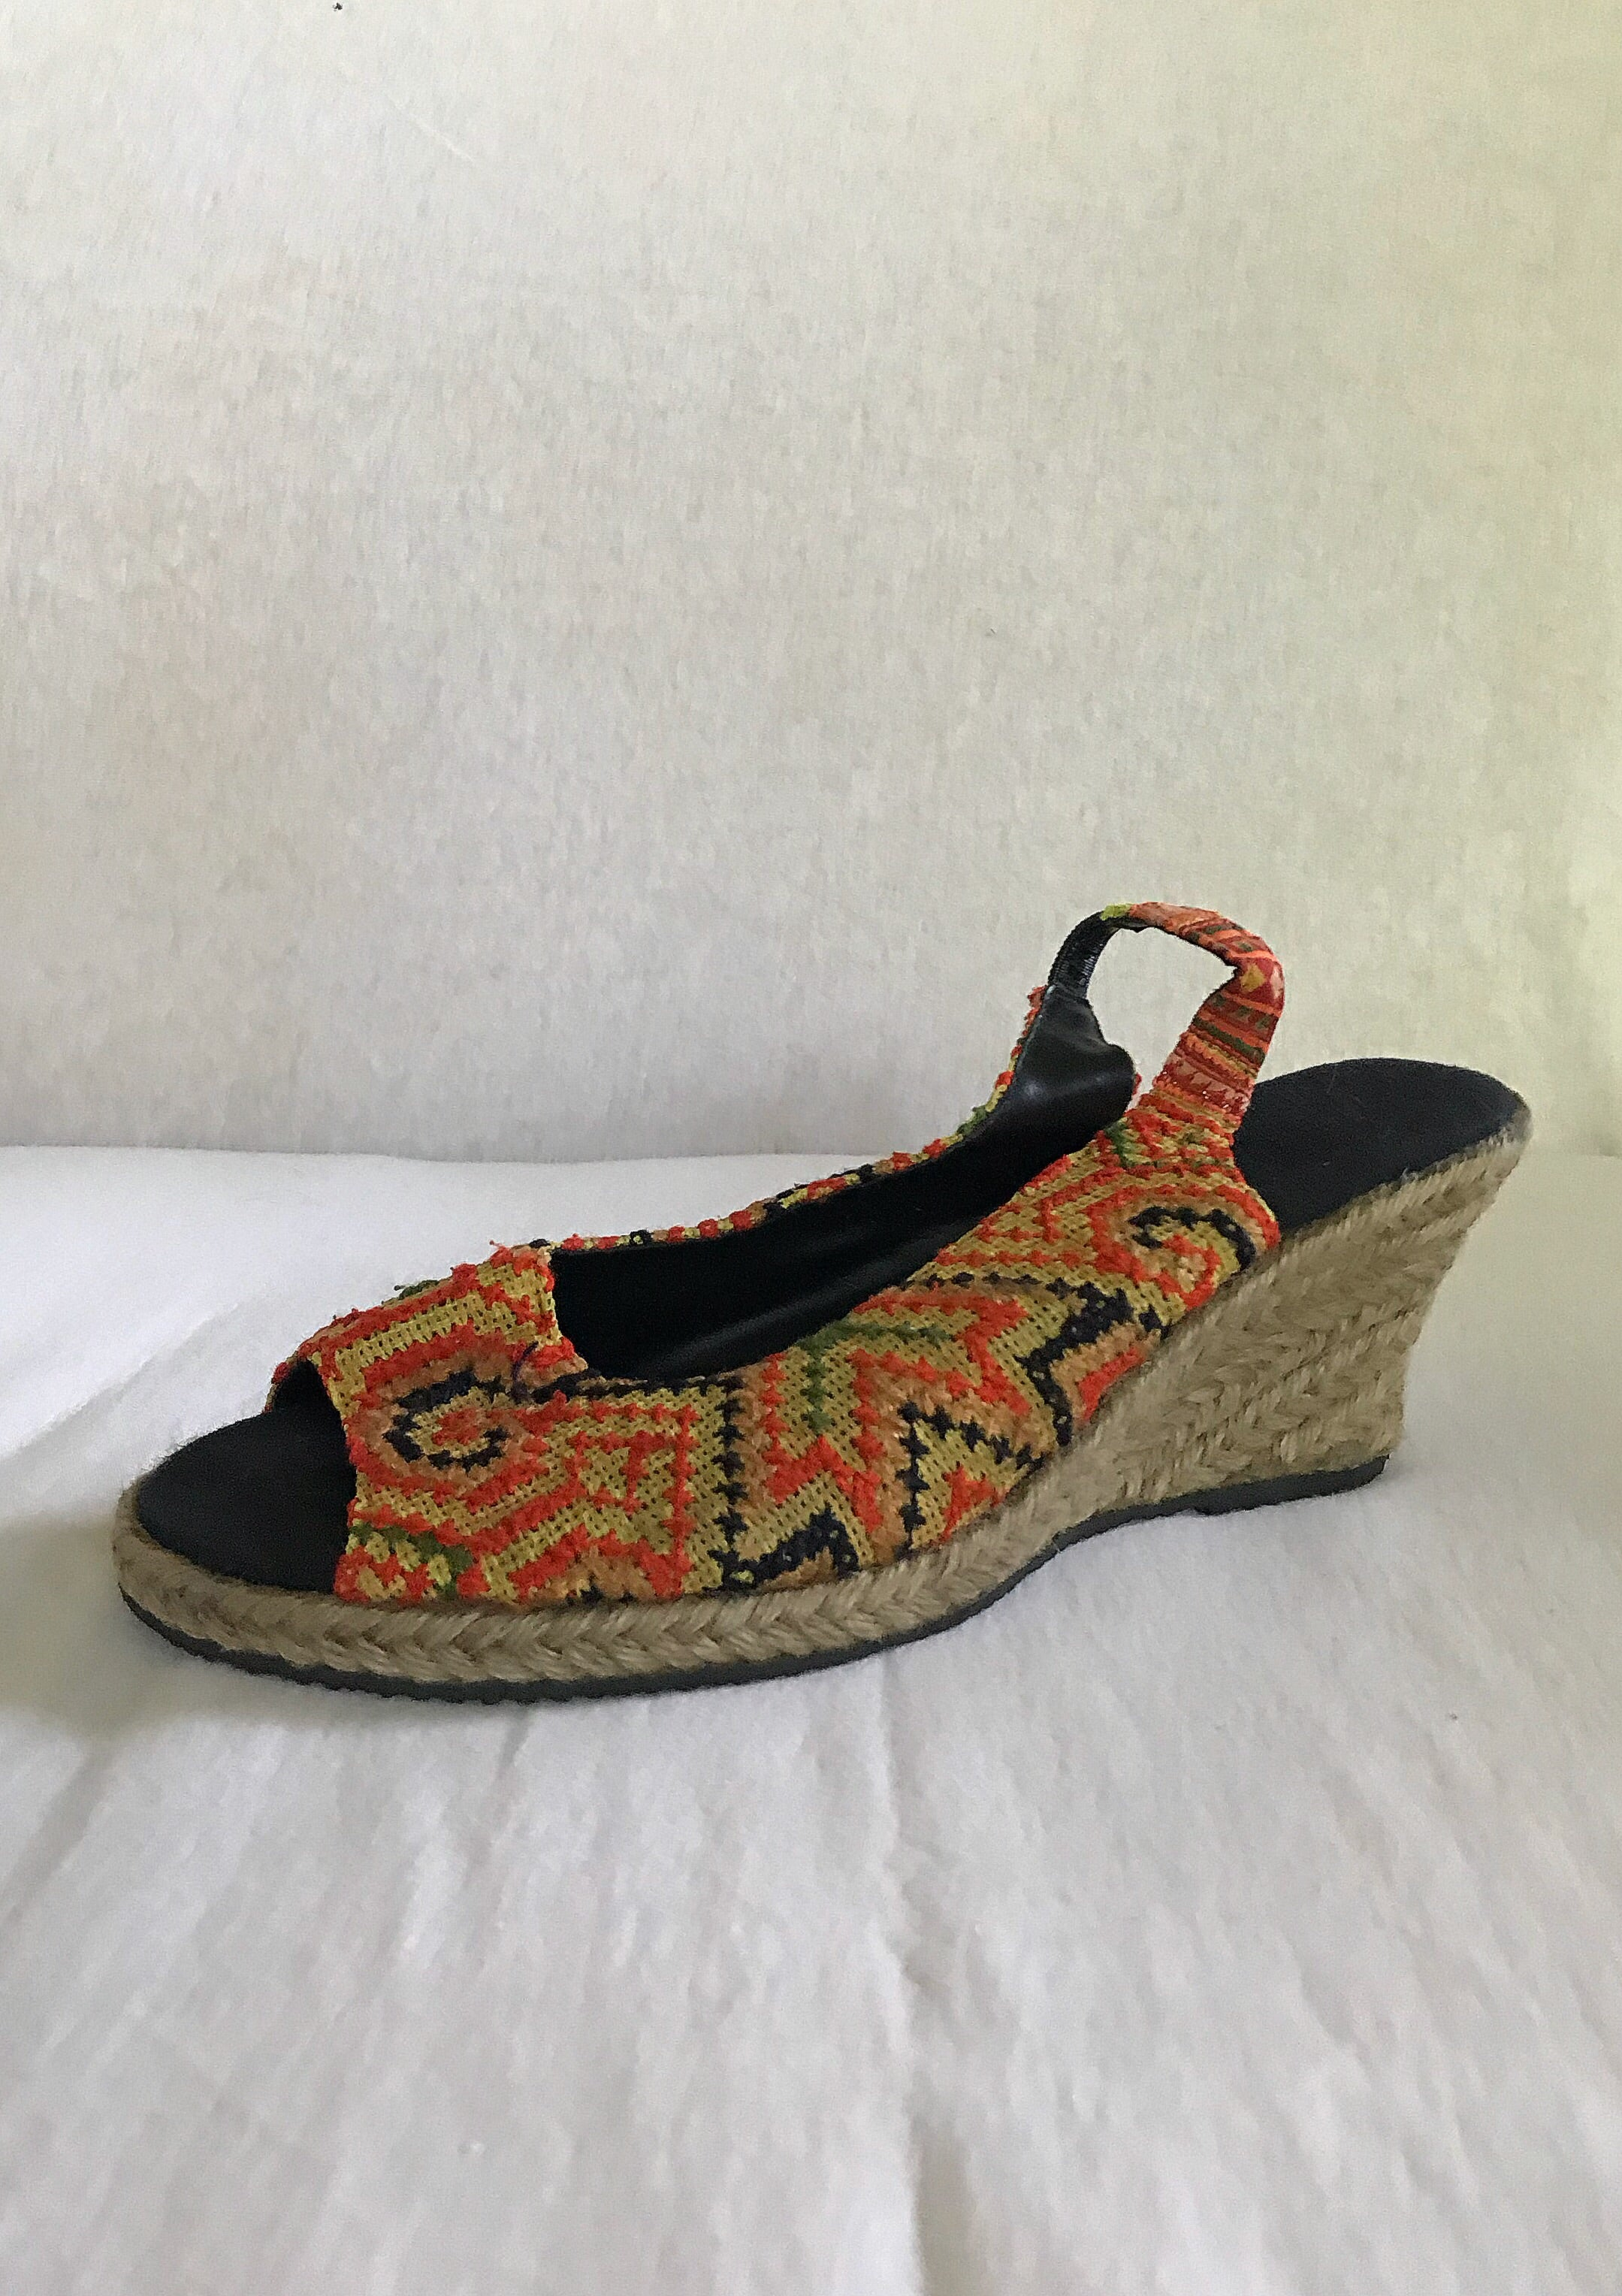 Hmong Hilltribe Sandal Wedge